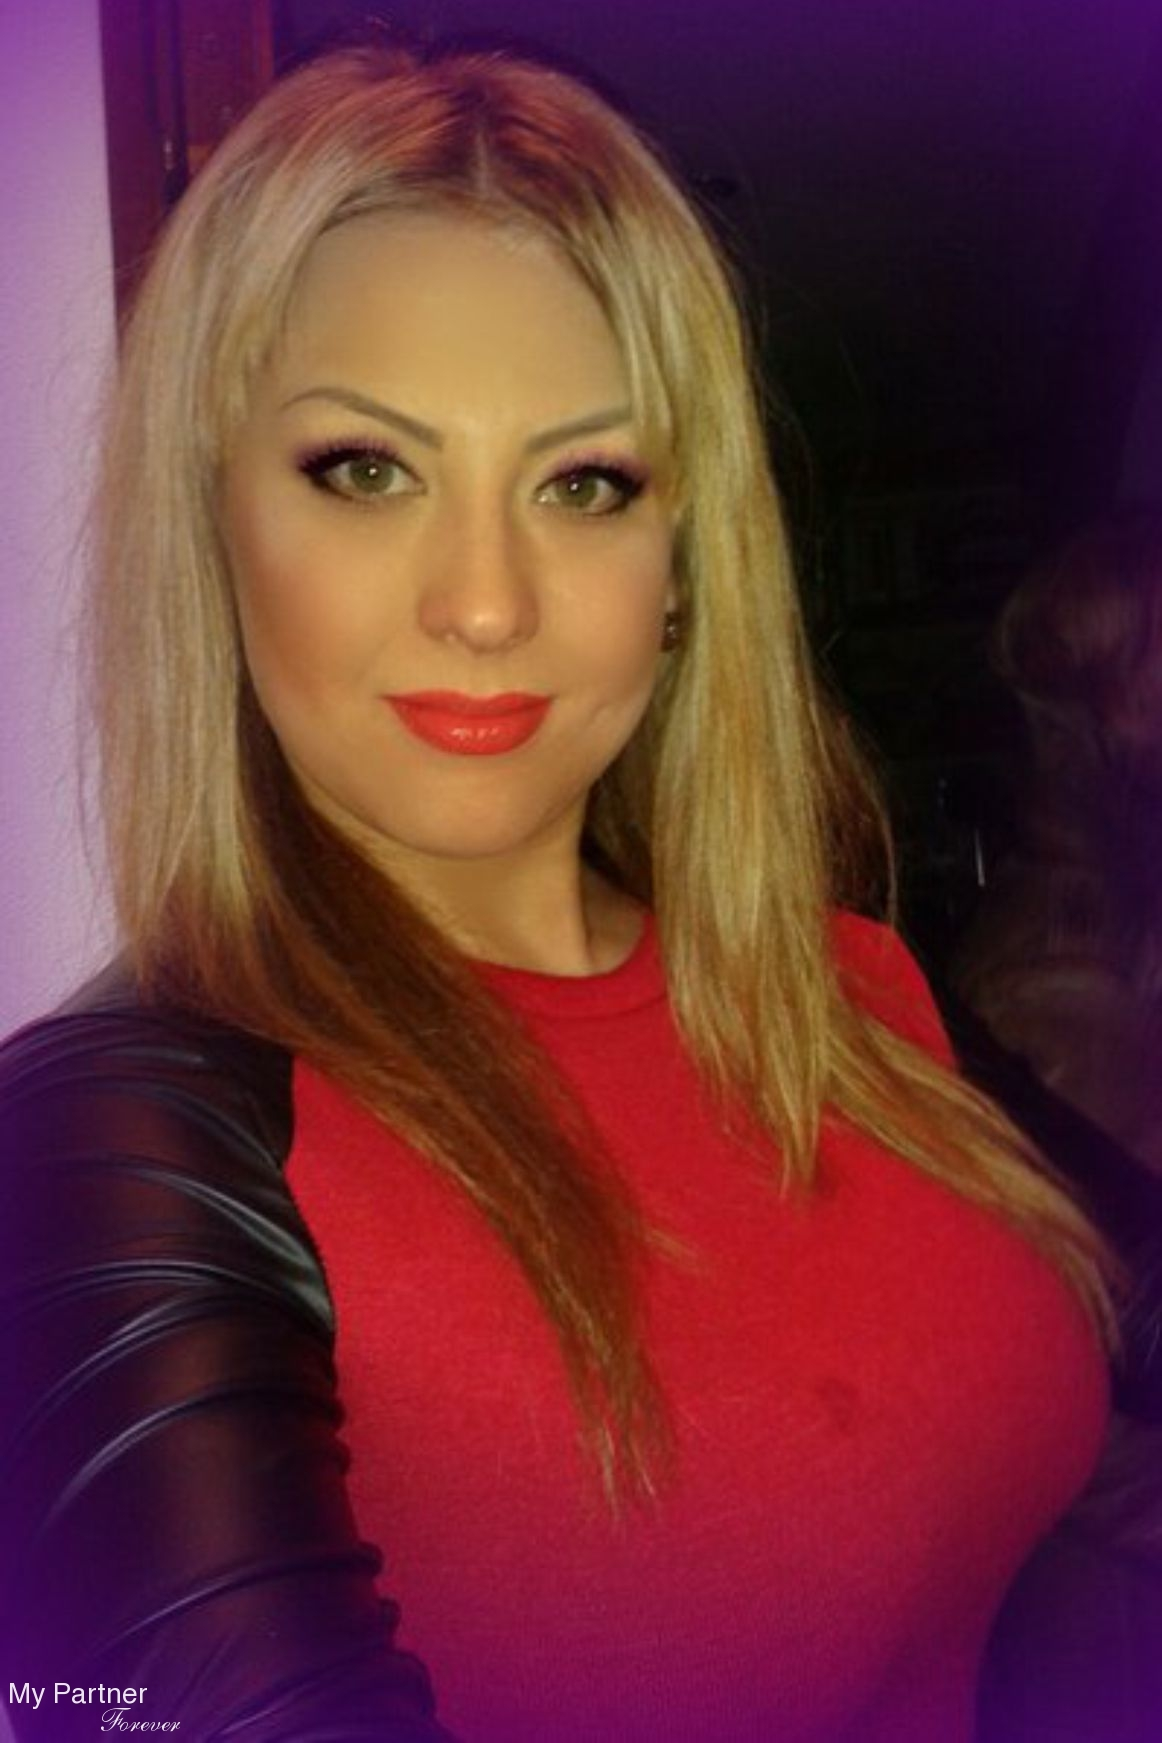 Ukraine girl dating site